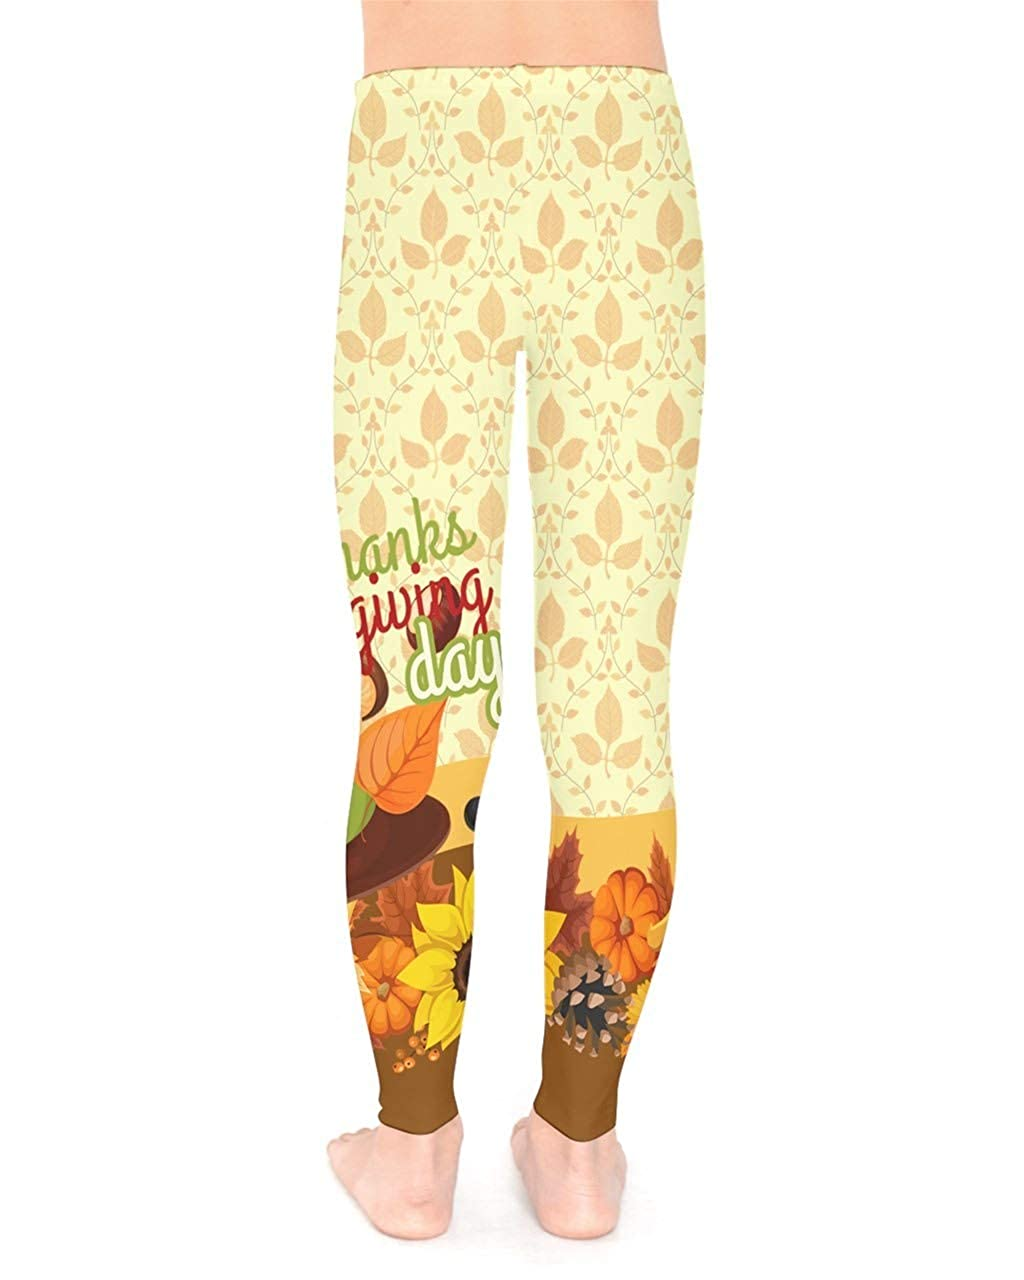 6b2a3c9c19e9f Amazon.com: PattyCandy Girls 2-13 Years Old Hearts & Cartoon Flamingo &  Thanksgiving Patterns Toddler Kids Leggings: Clothing